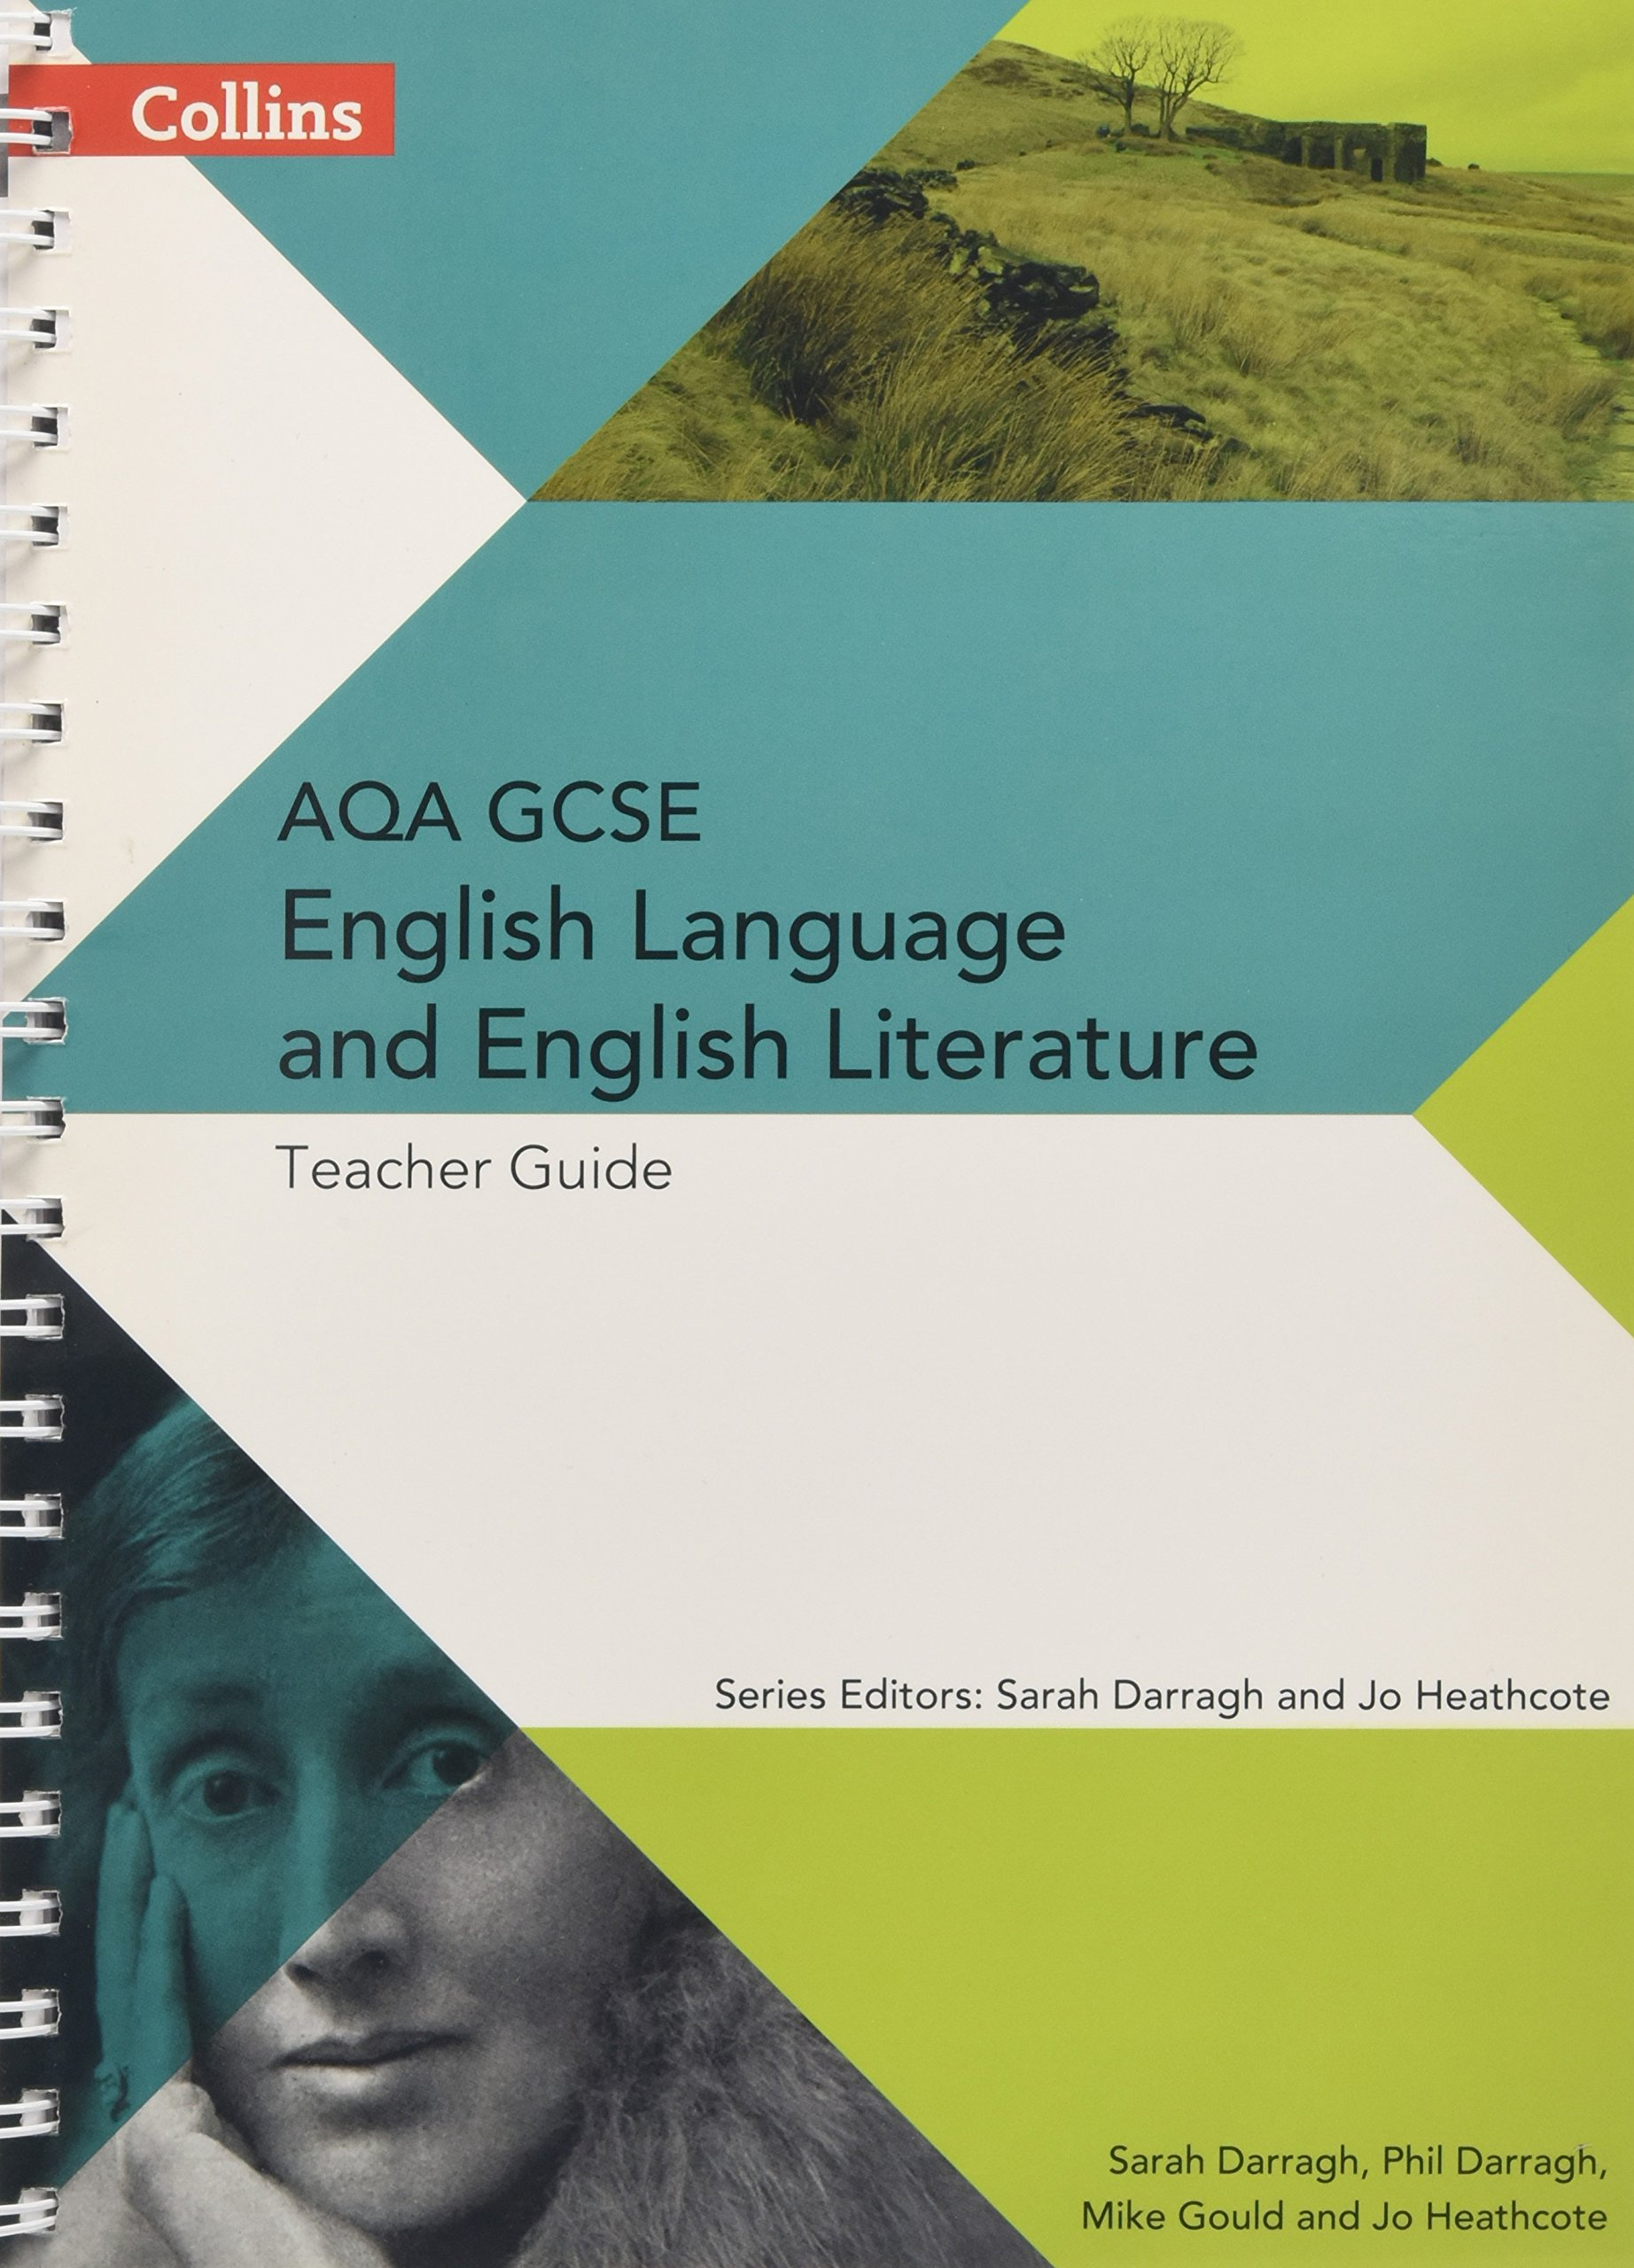 Collins AQA GCSE English Language and English Literature — AQA GCSE English Language and English Literature: Teacher Guide (AQA GCSE English Language and English Literature 9-1)